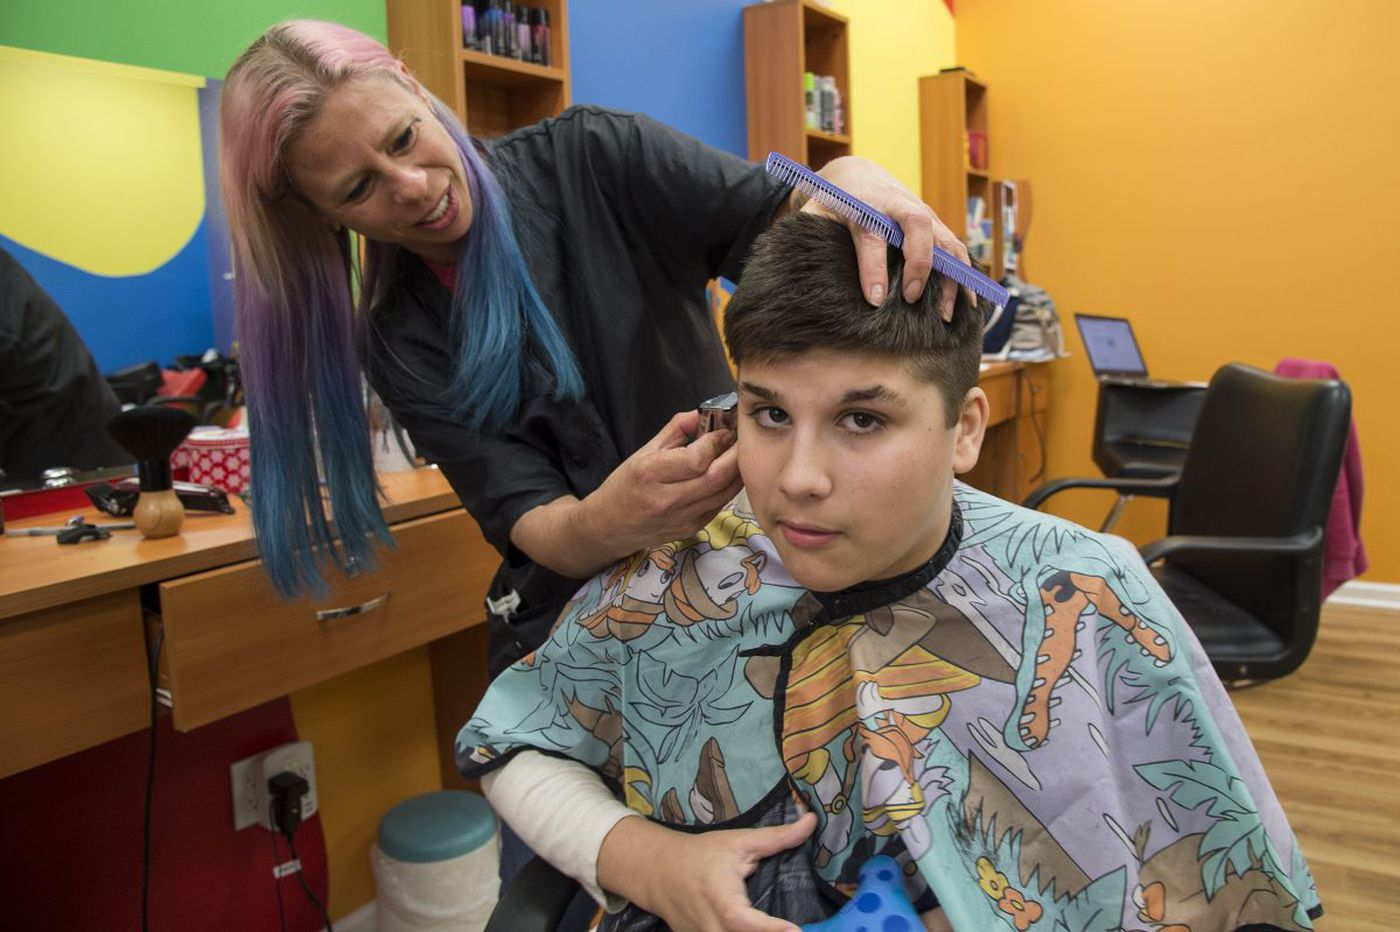 Training programs help professionals meet autistic children's everyday needs